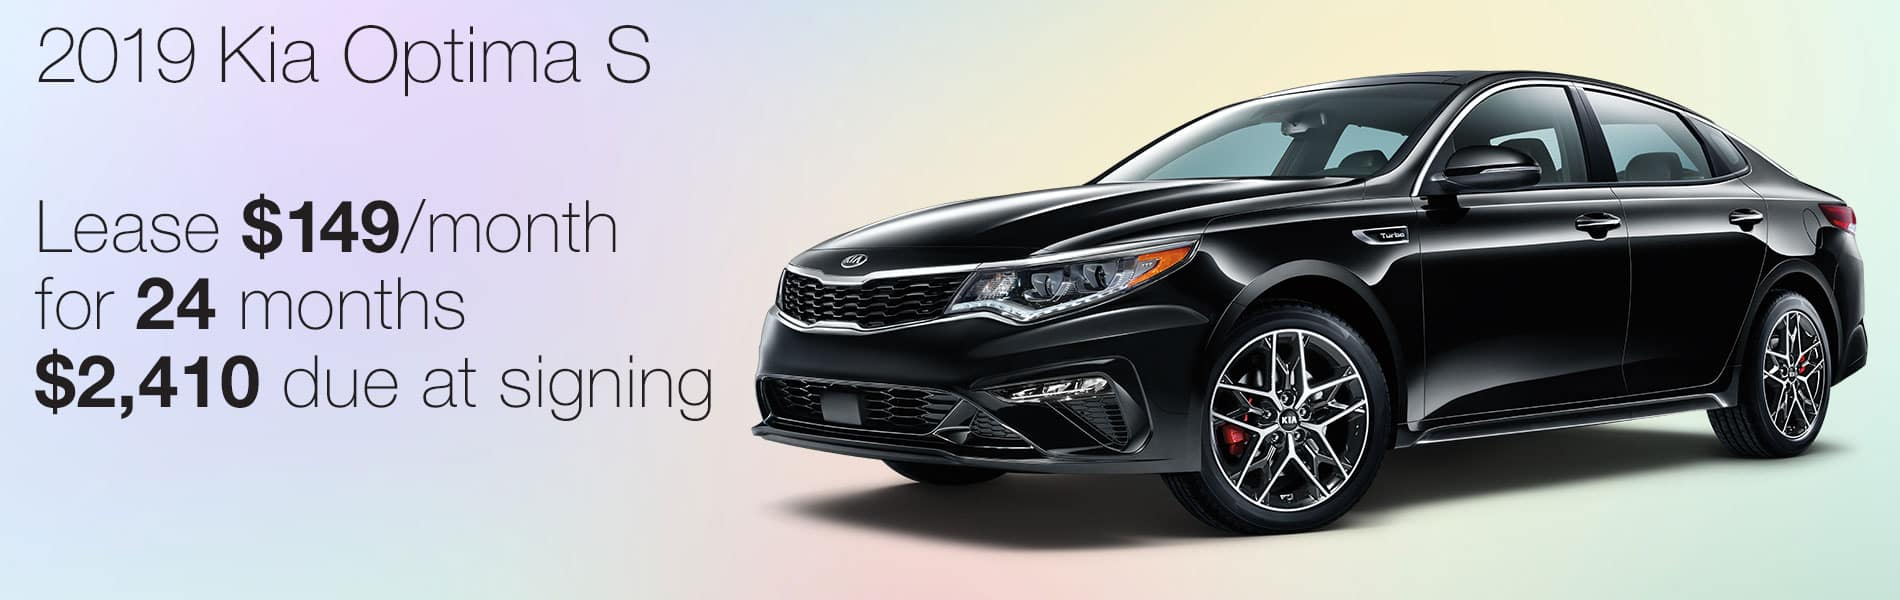 Lease a 2019 Kia Optima S for $149 per month with $2,410 due at signing